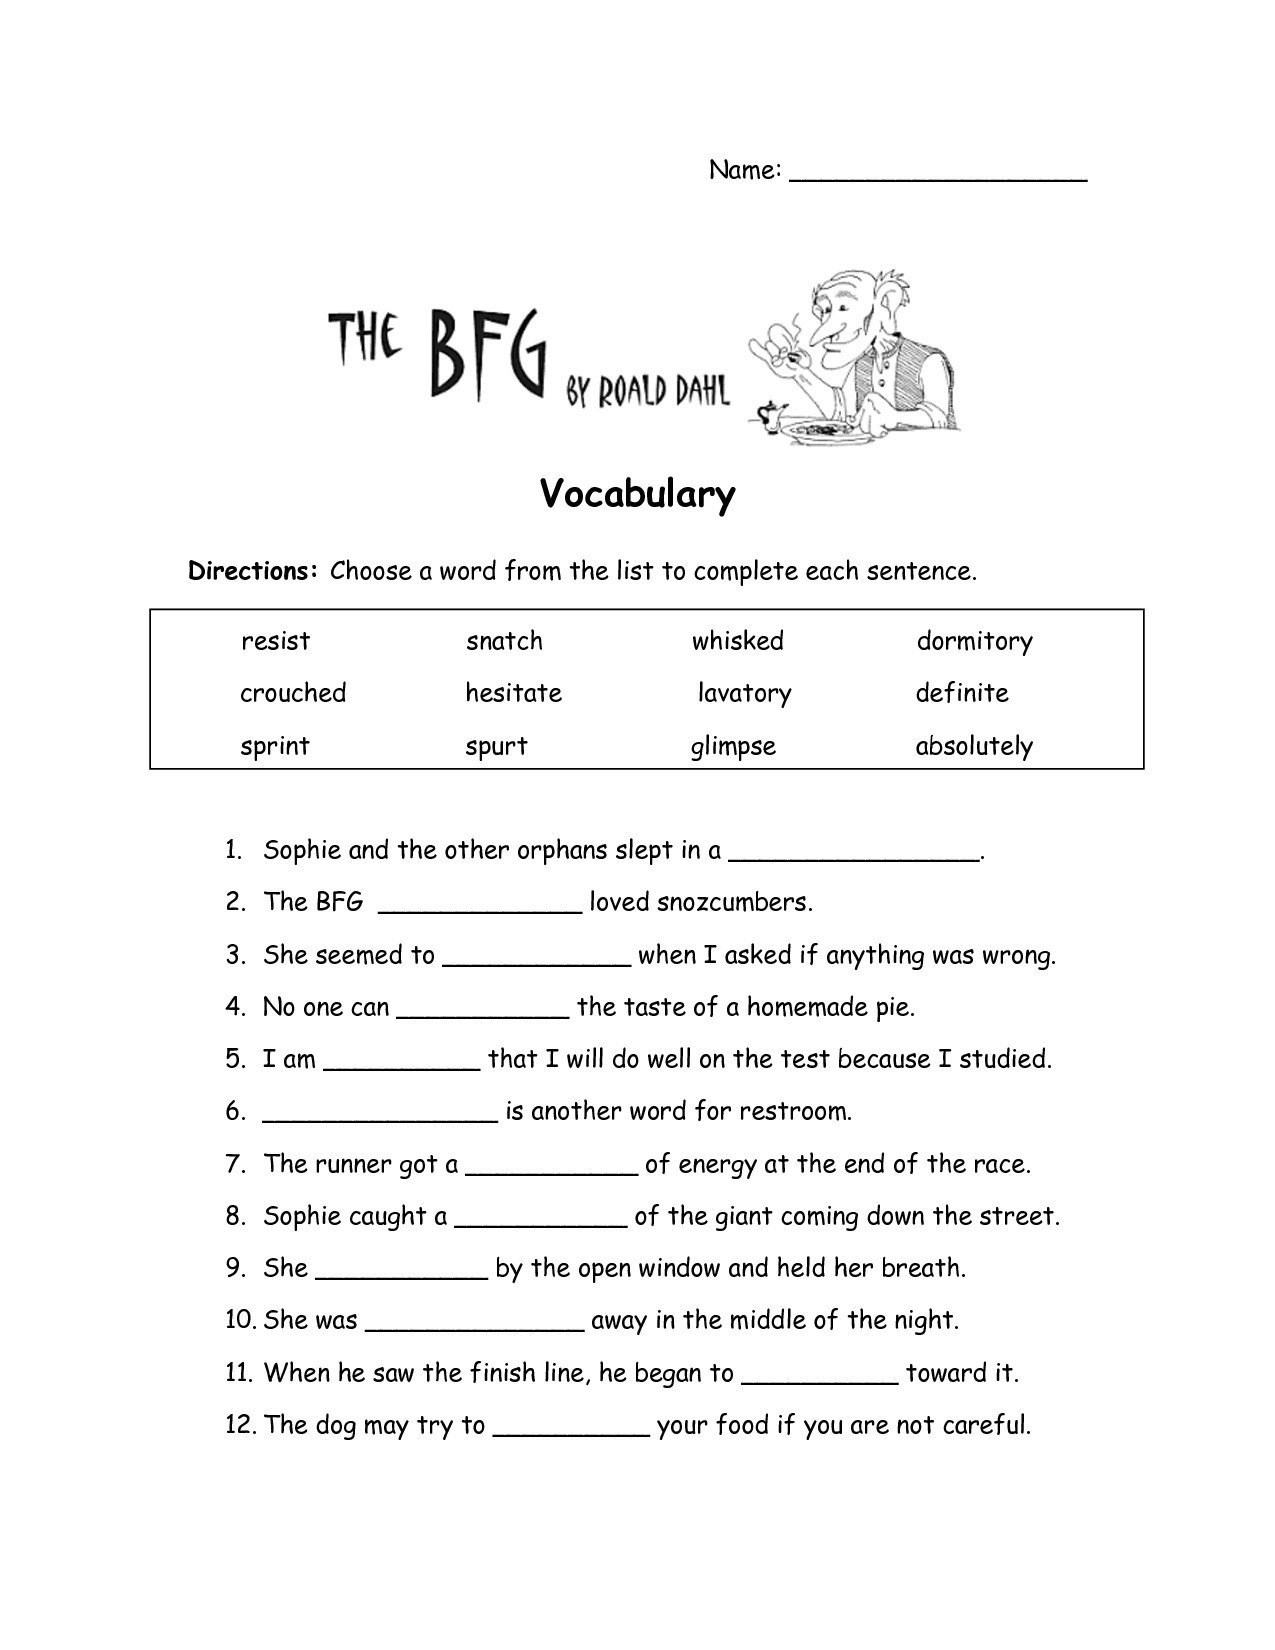 Identifying Variables Worksheet Answers  Newatvs As Well As Scientific Method Review Identifying Variables Worksheet